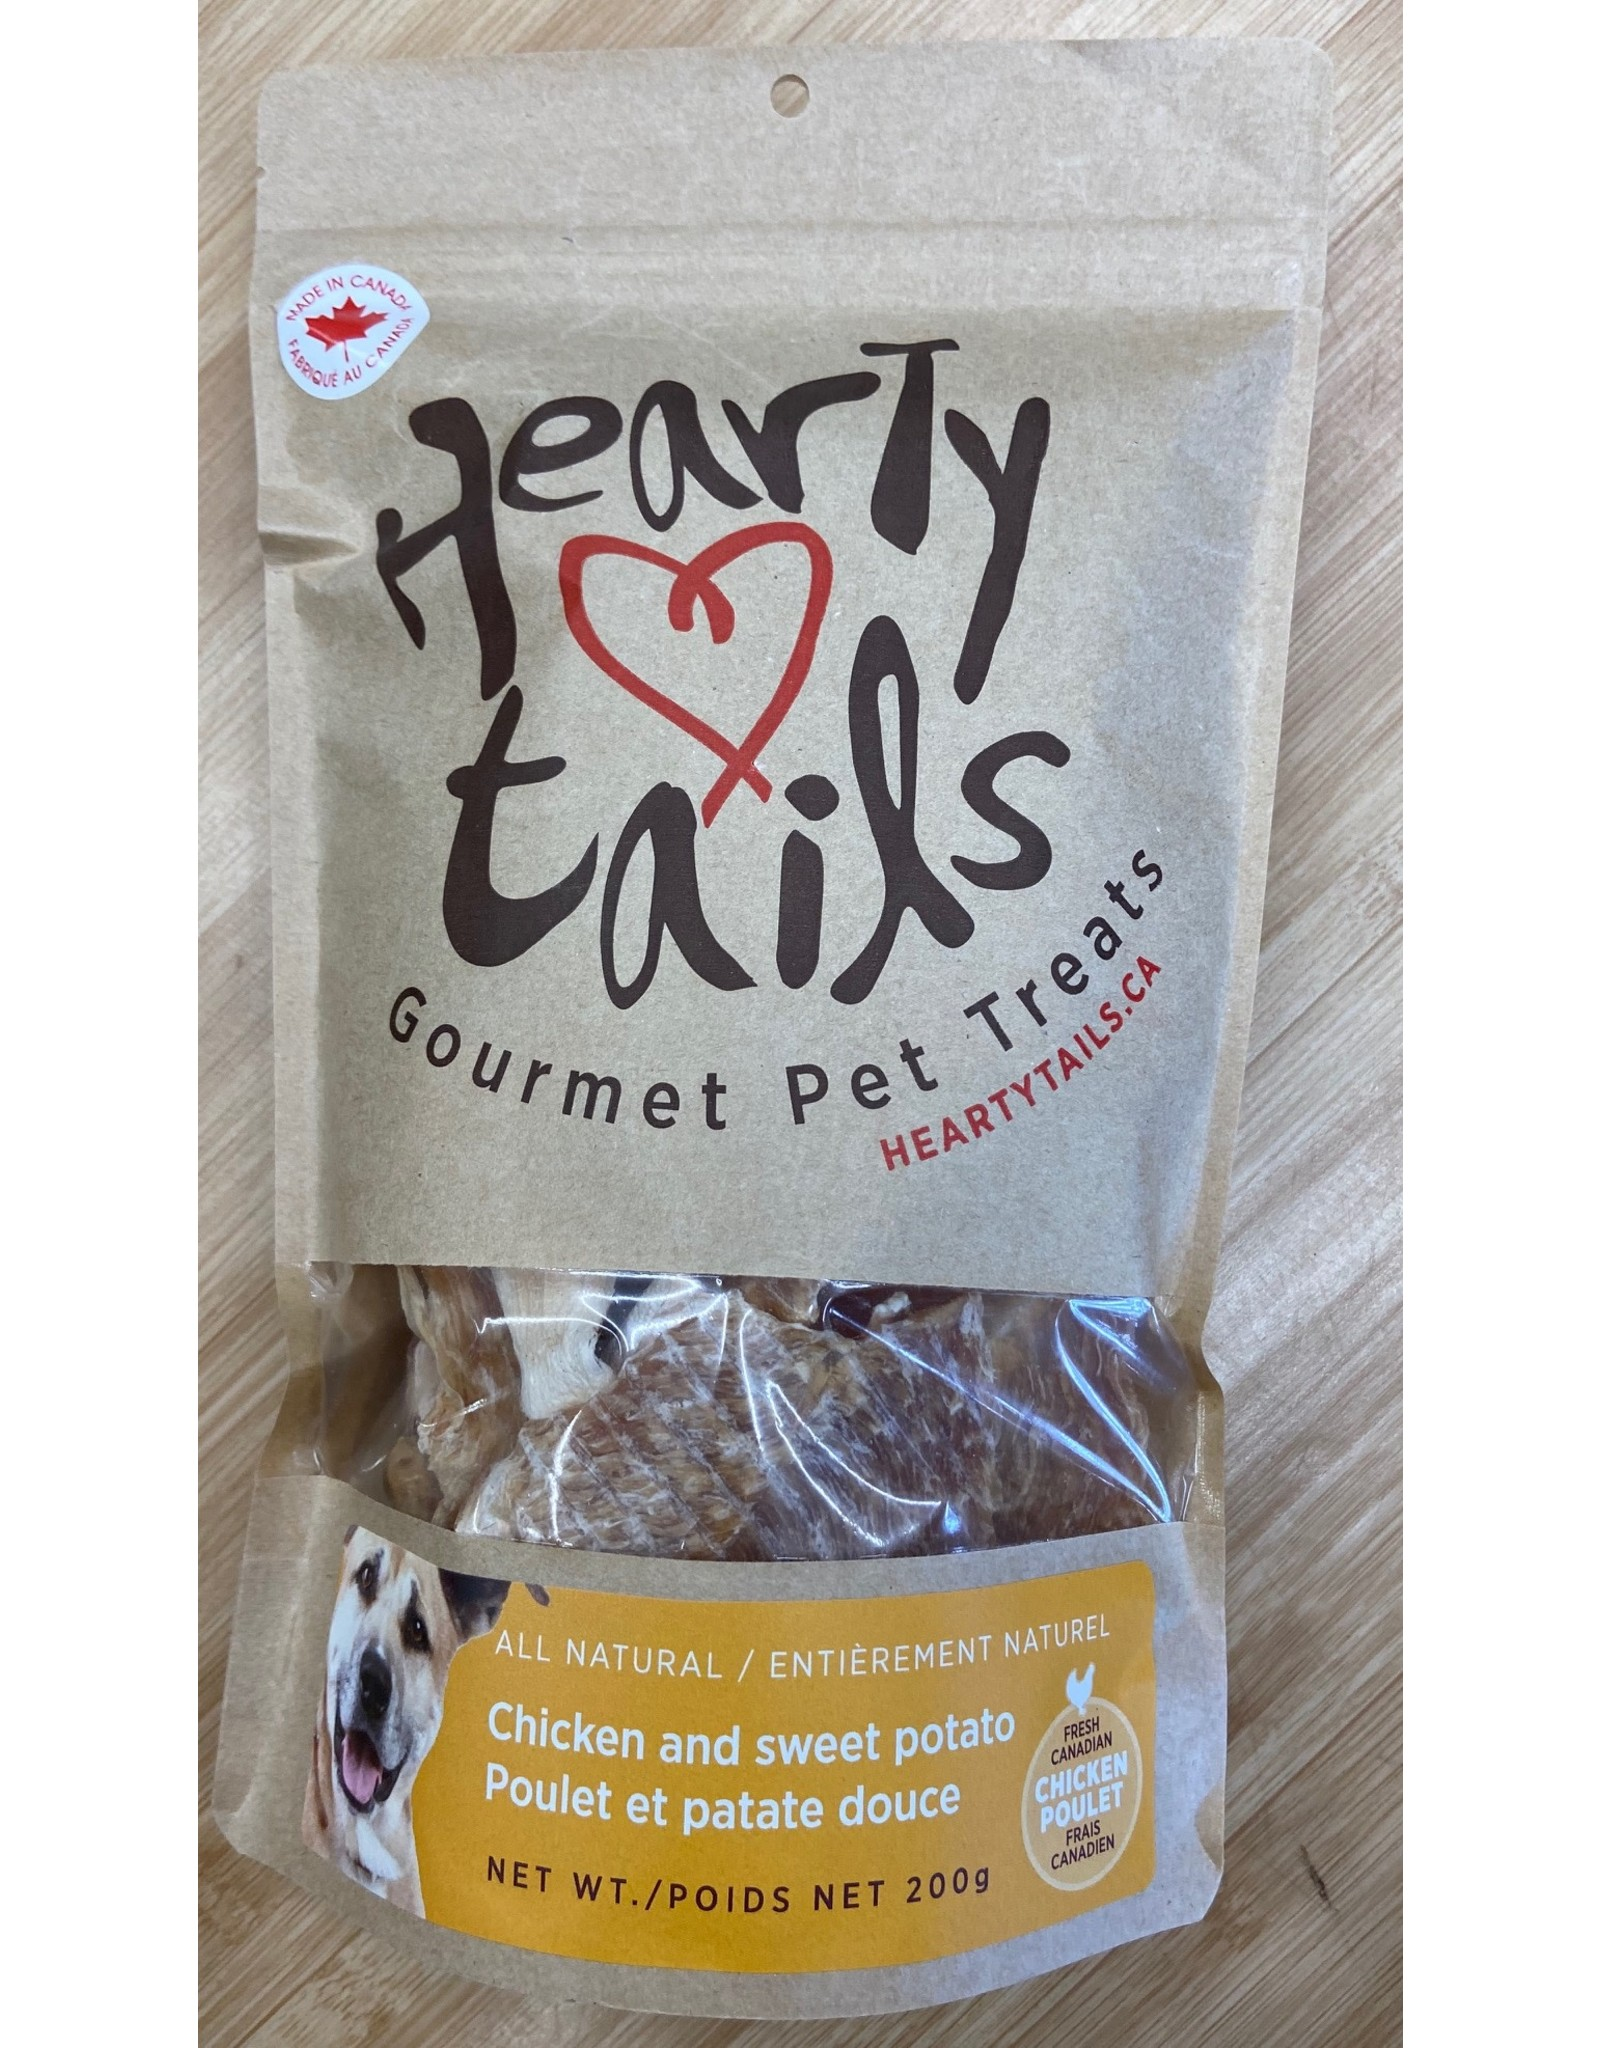 Hearty Tails Hearty Tails Pet Treats Chicken and Sweet Potato